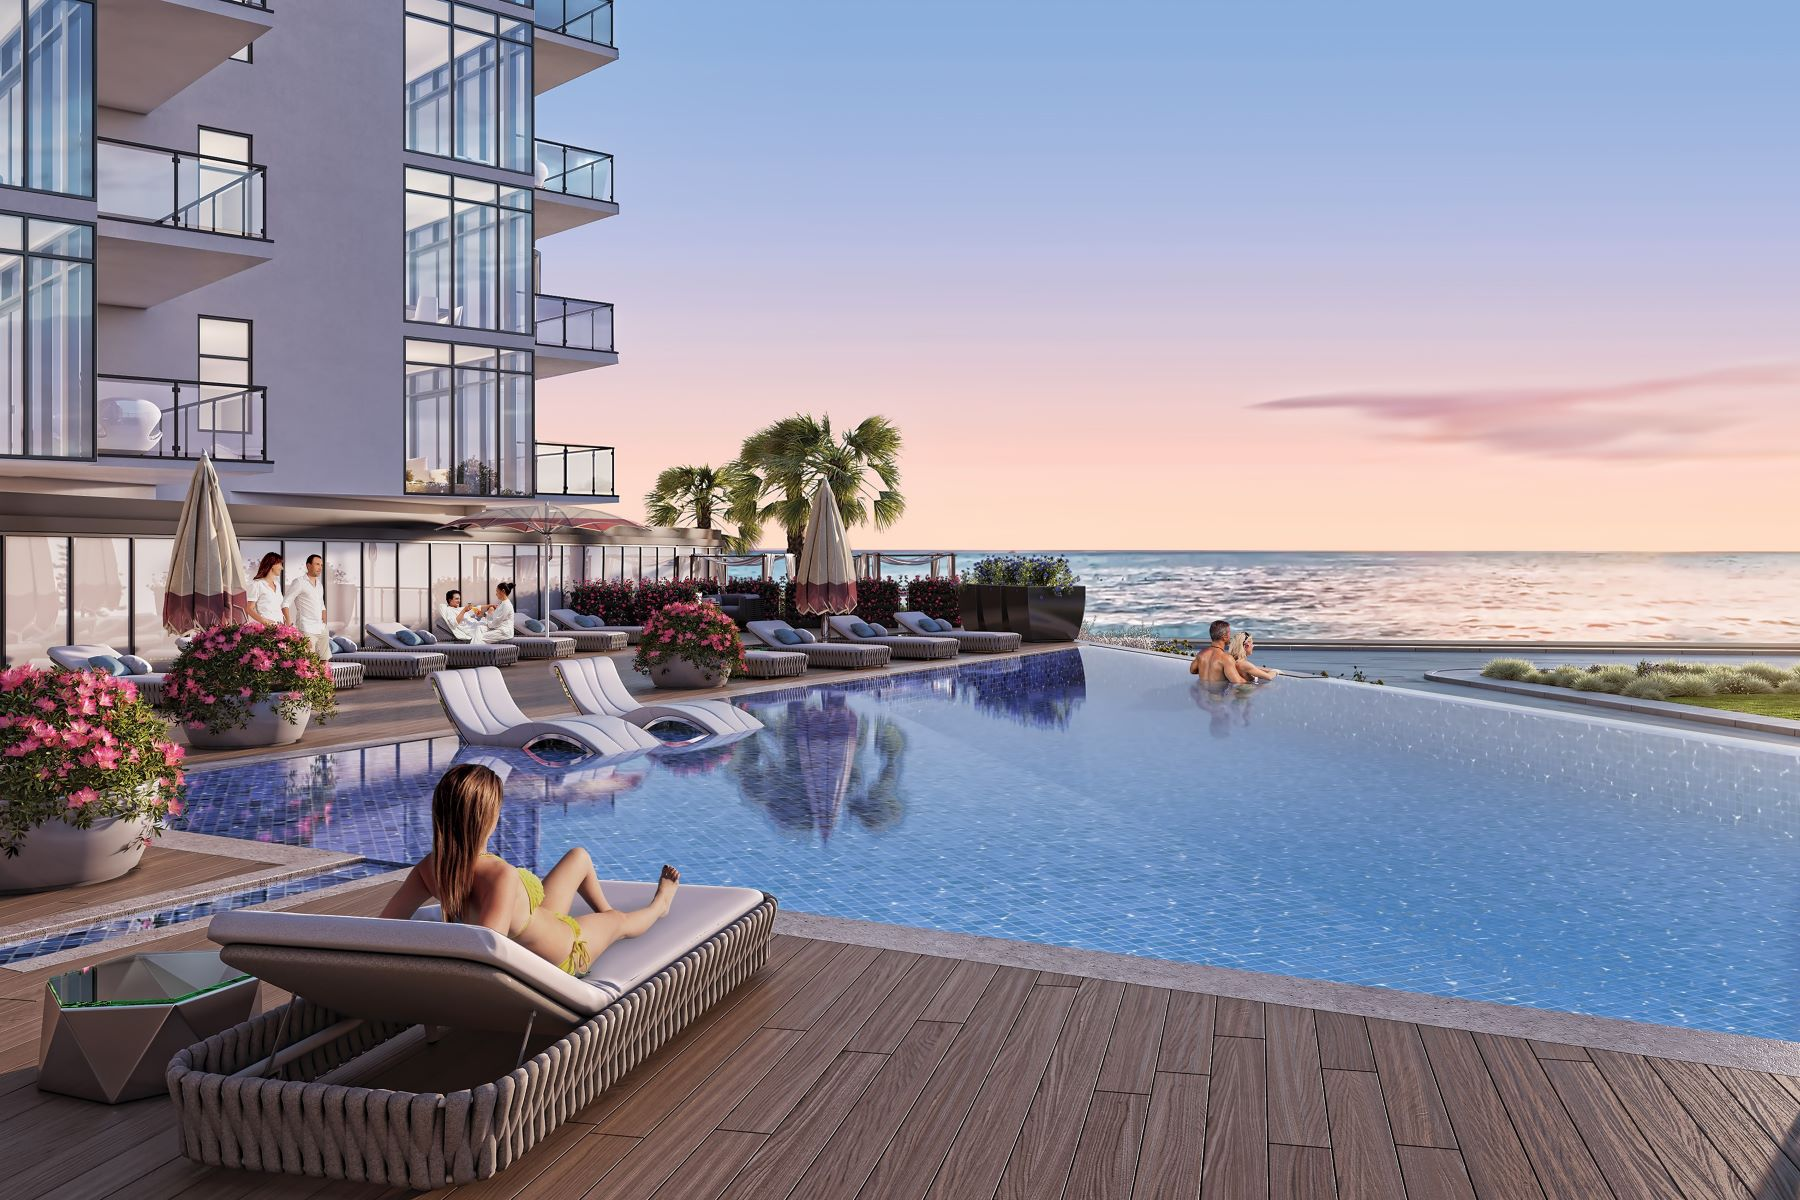 Condominiums للـ Sale في South Beach at Long Branch 350 Ocean Avenue 204, Long Branch, New Jersey 07740 United States